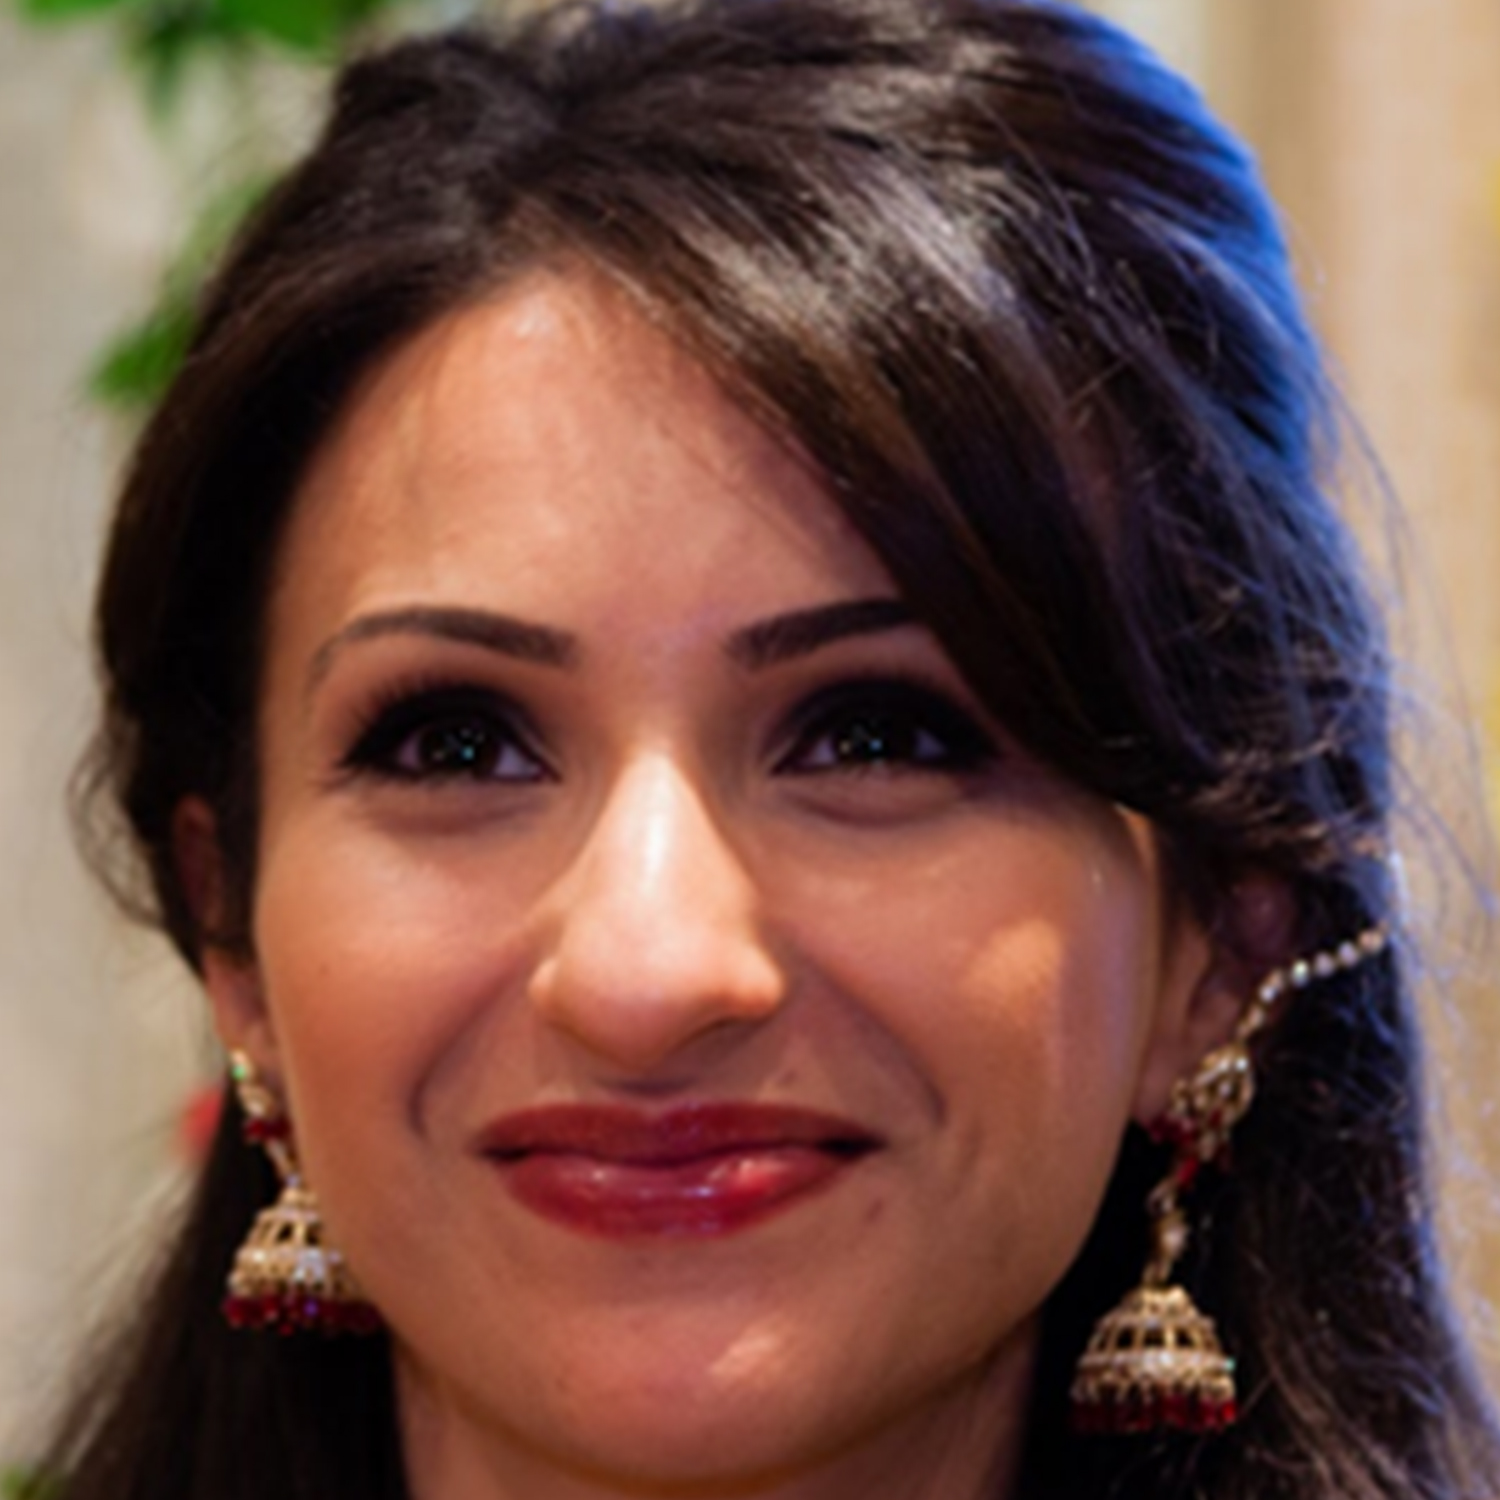 Aamna Khokhar - Founder and DirectorAs the founder of Schools4Change, Aamna has a BSc in Psychology, a PGCE in Social Sciences and an MA in Education. With over a decade of teaching experience in the UK, she has always been eager to create thinking minds. Aamna began concentrating on her efforts to address issues of empowerment for women and the underclasses in the hope to take a small step towards a more equal world.To contact Aamna, email:info@schools4change.org.uk